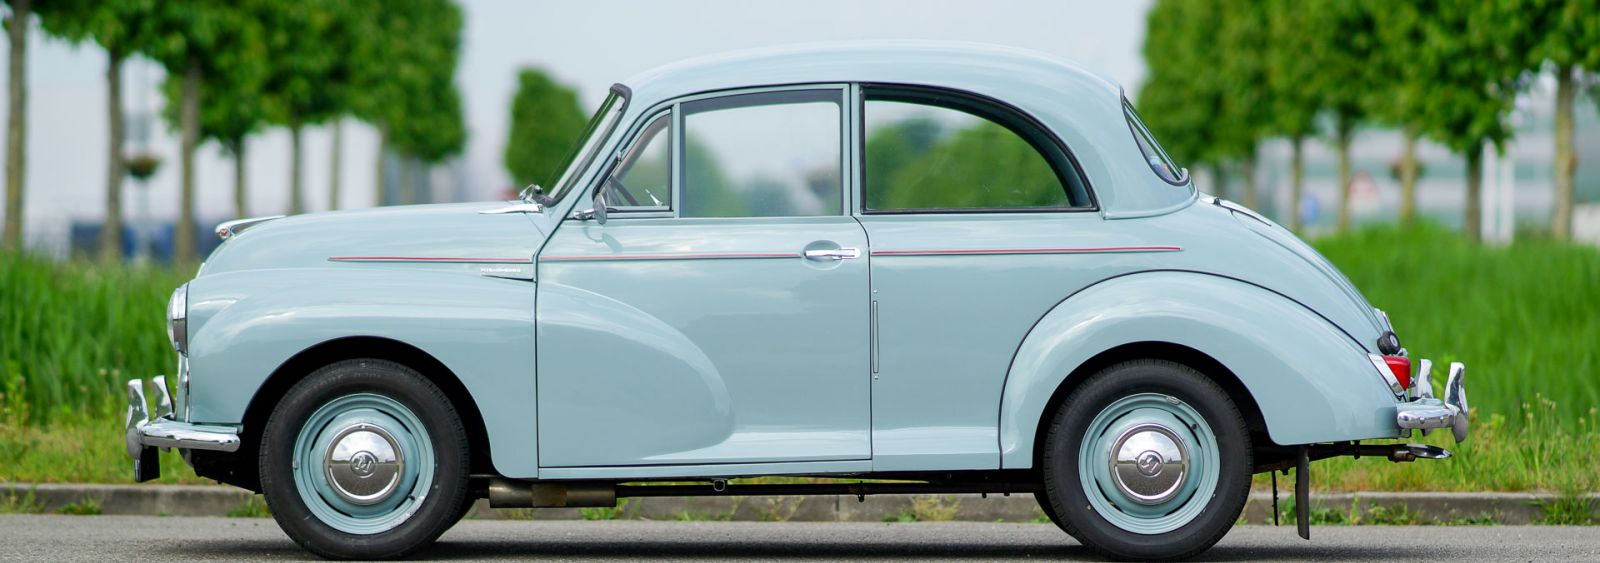 Morris Minor 1000, 1959 - Welcome to ClassiCarGarage